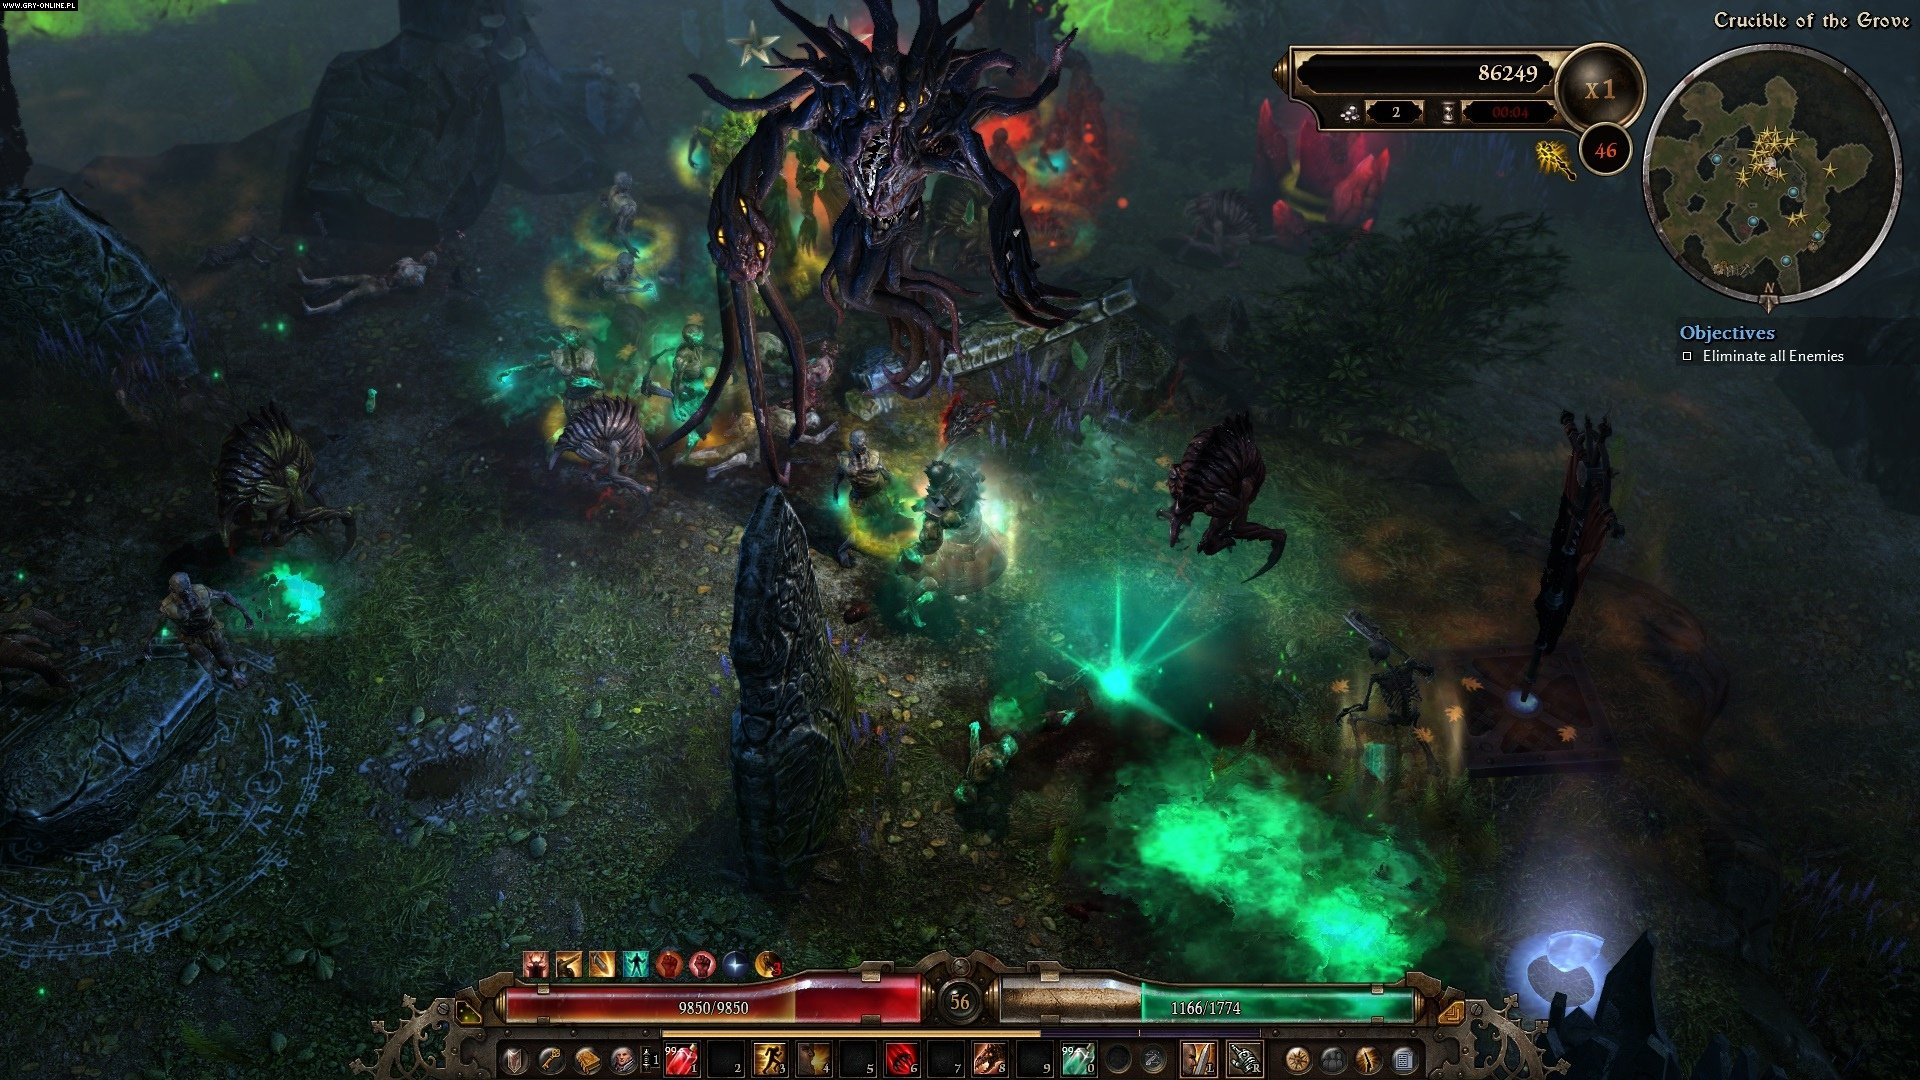 Grim Dawn PC, XONE Gry Screen 3/56, Crate Entertainment